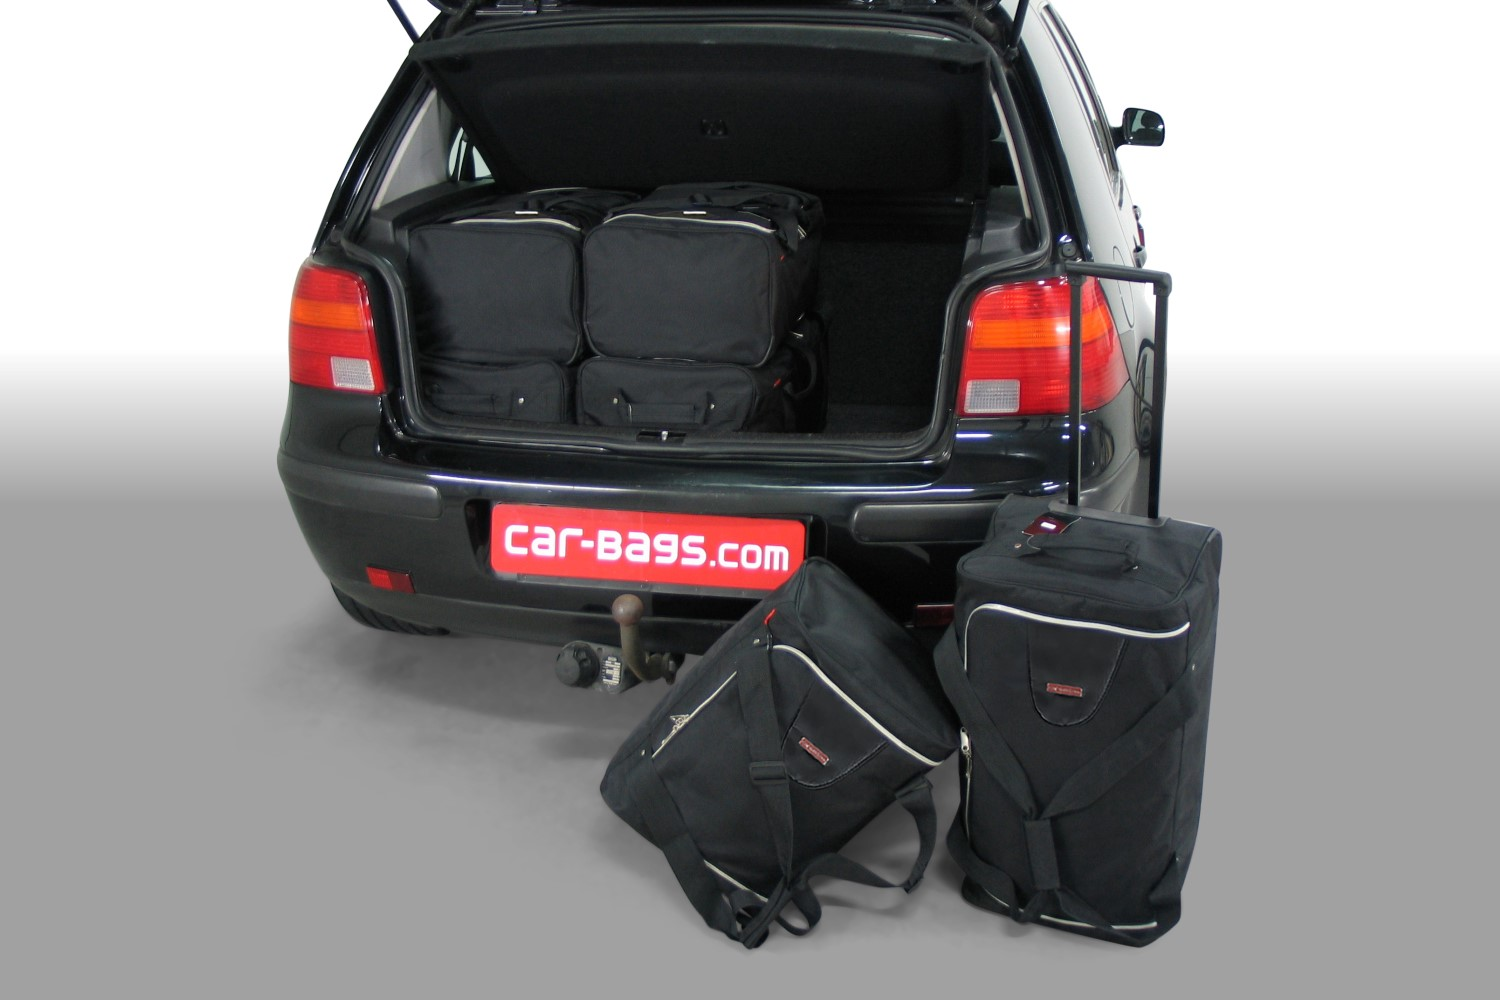 Volkswagen Golf IV (1J) 1997-2003 3 & 5 door Car-Bags.com travel bag set (1)